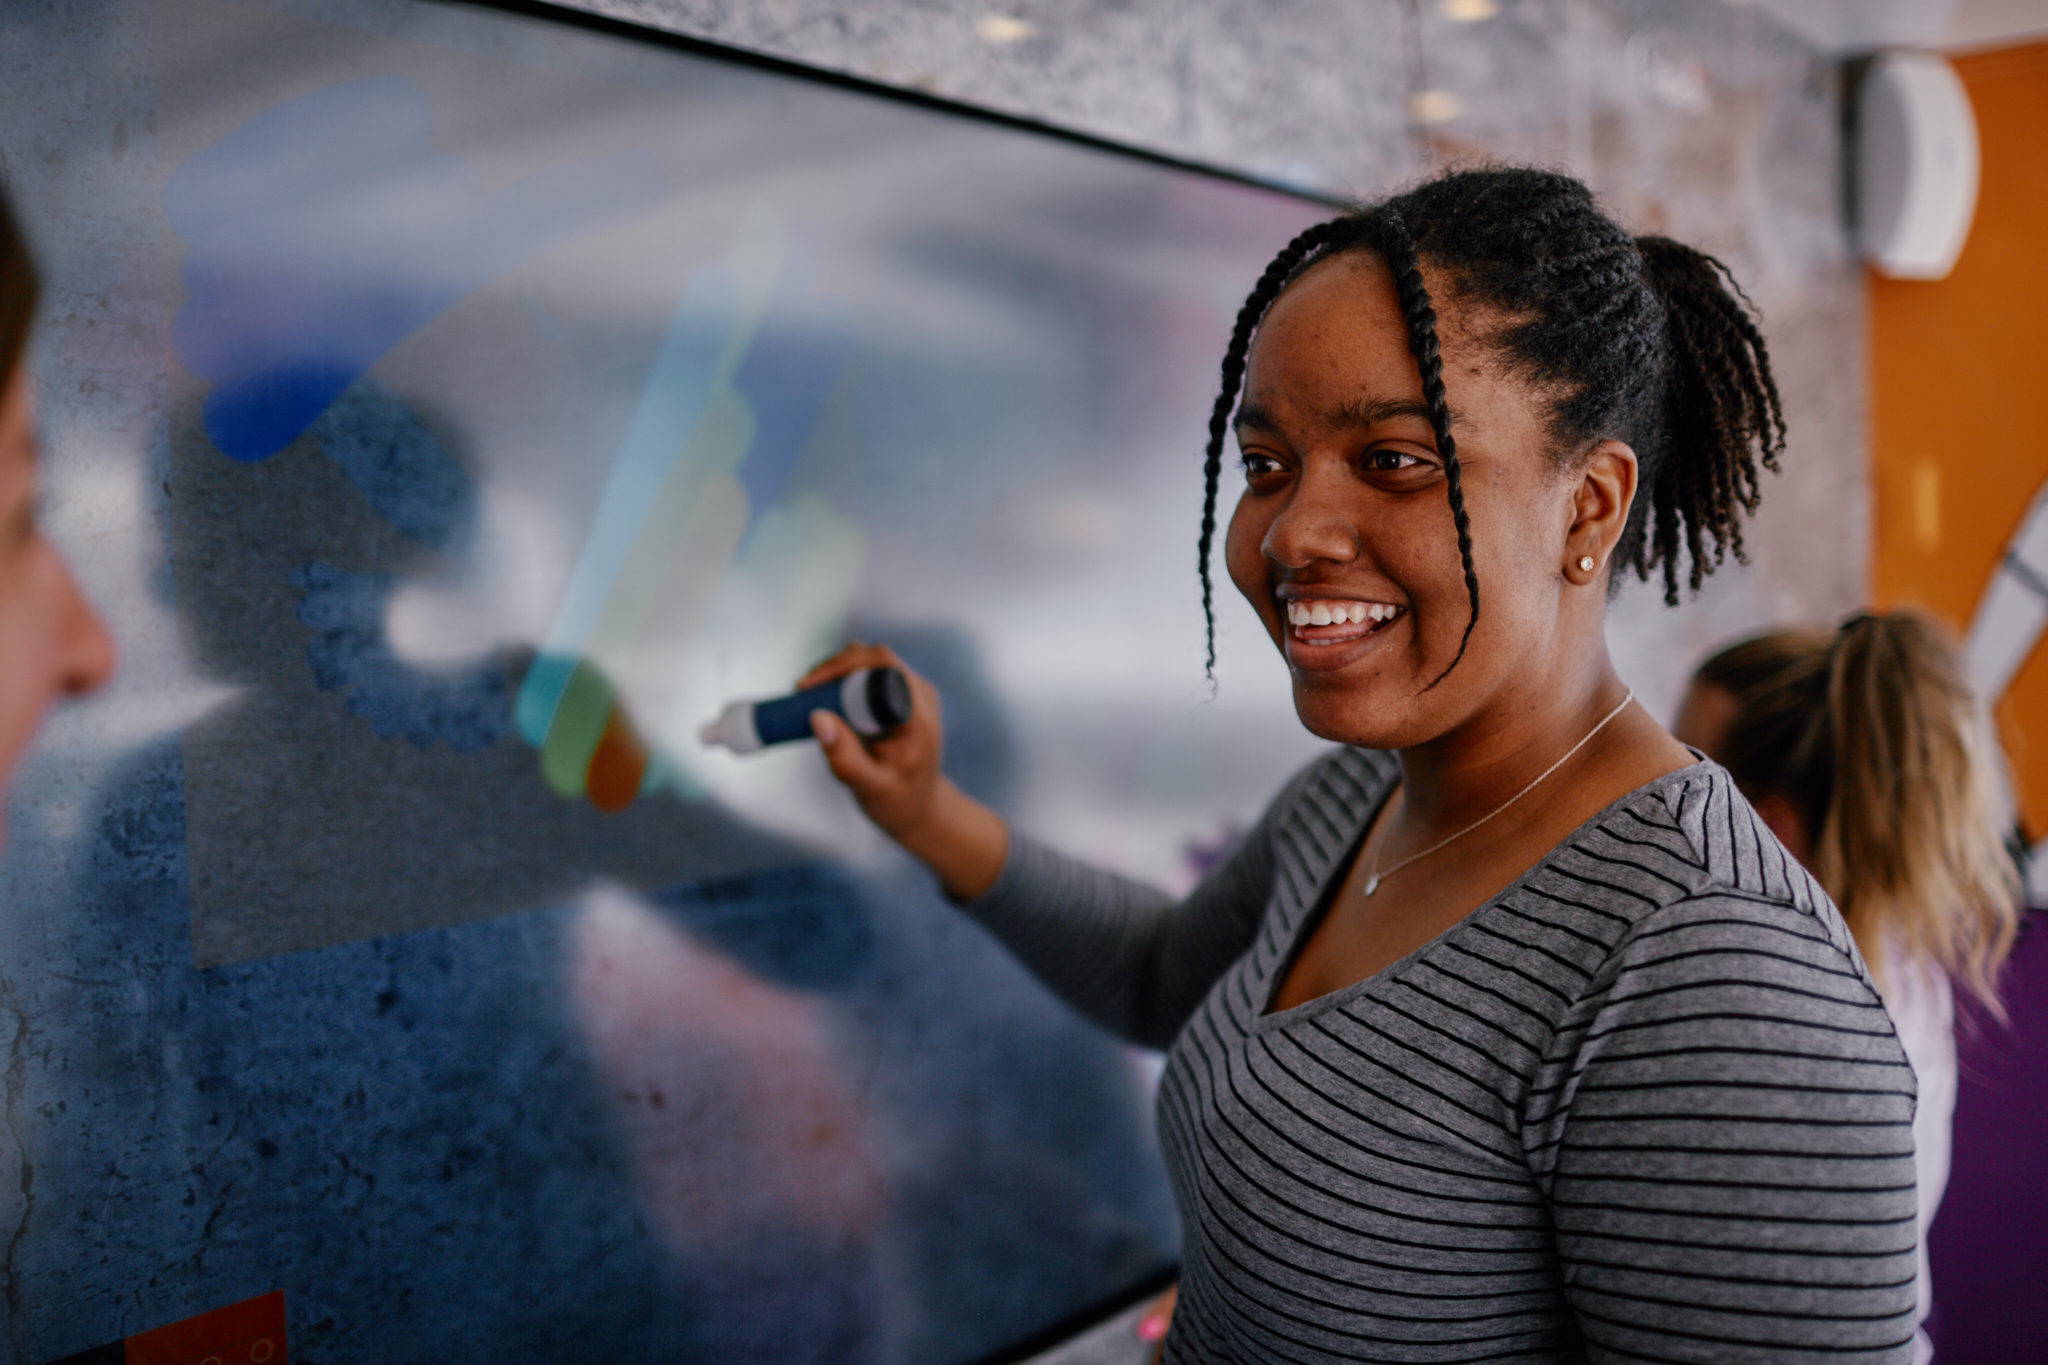 Woman using digital graffiti experience